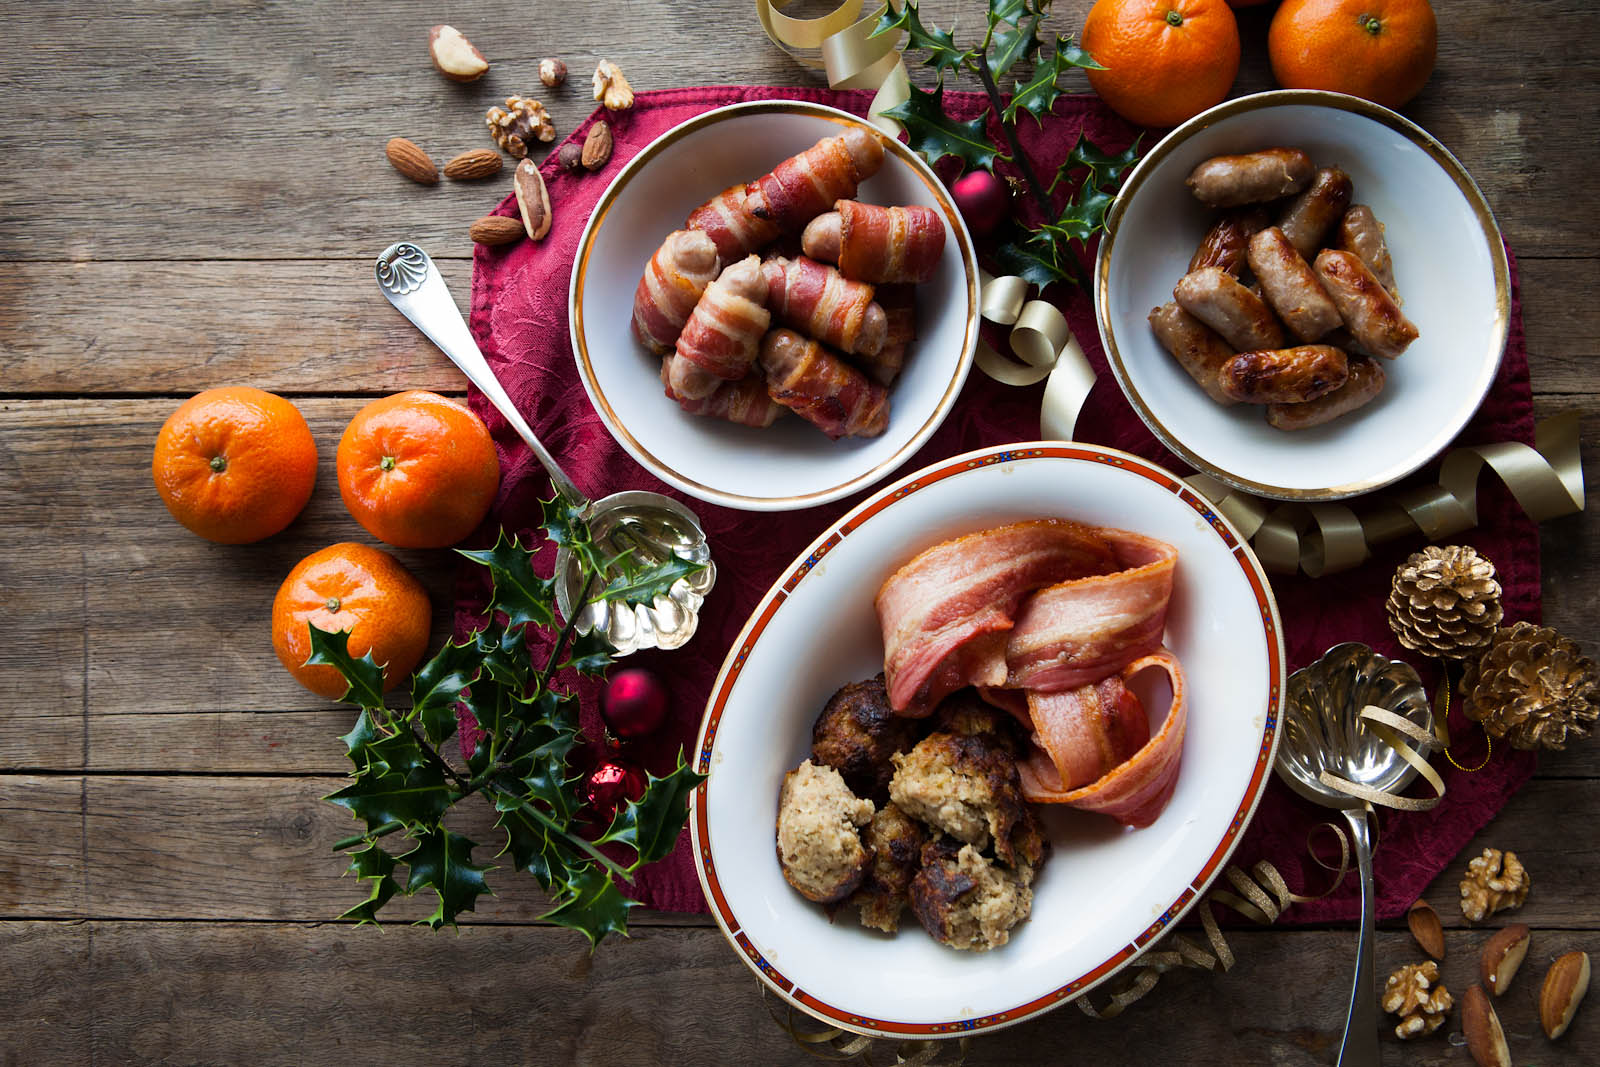 Chipolatas, streaky bacon and stuffing